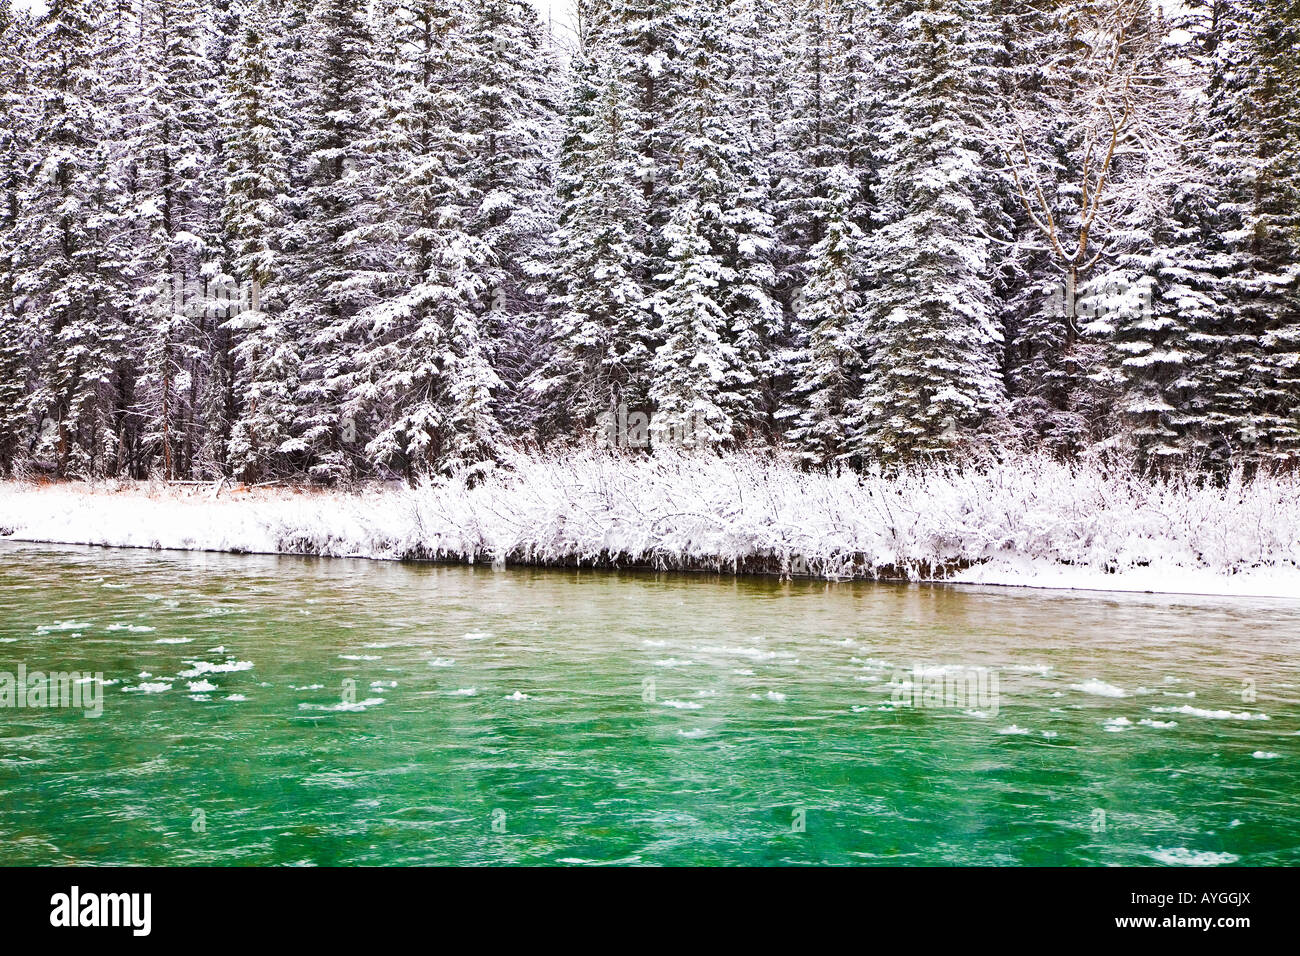 A tree-lined river in the winter Stock Photo